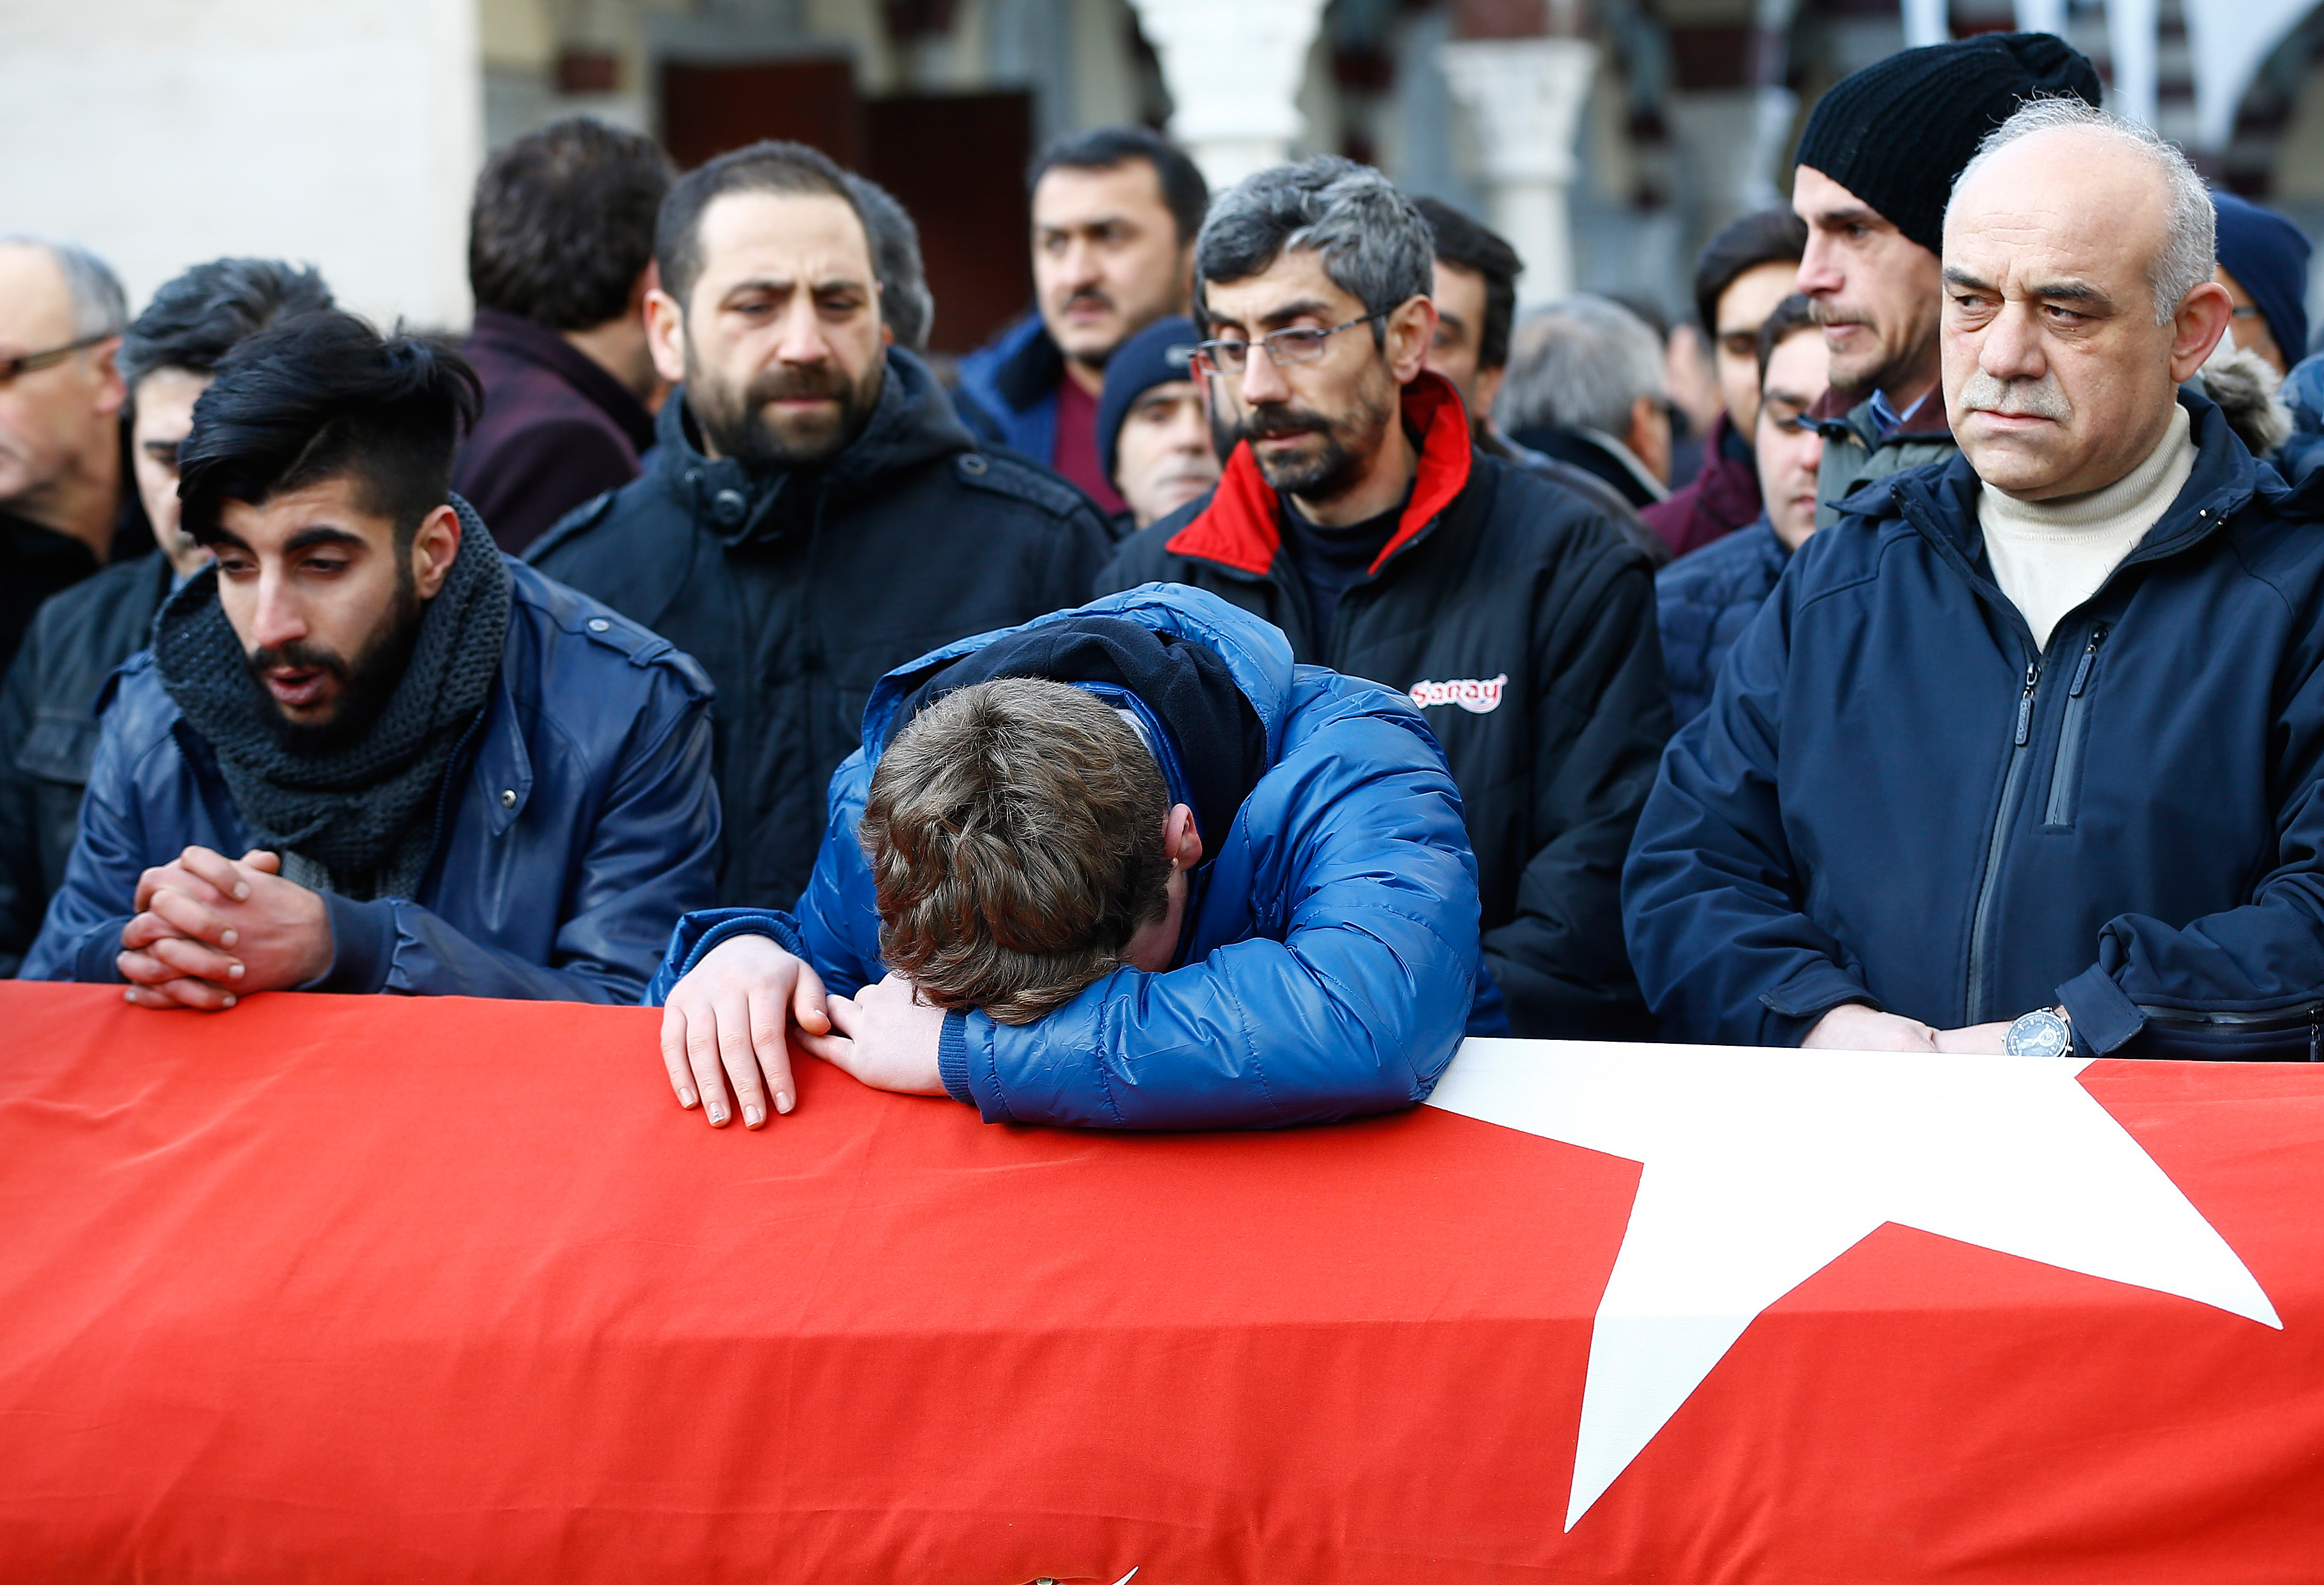 Relatives react at the funeral of Ayhan Arik, a victim of an attack by a gunman at Reina nightclub, in Istanbul, Turkey, January 1, 2017. Photo By Osman Orsal/Reuters